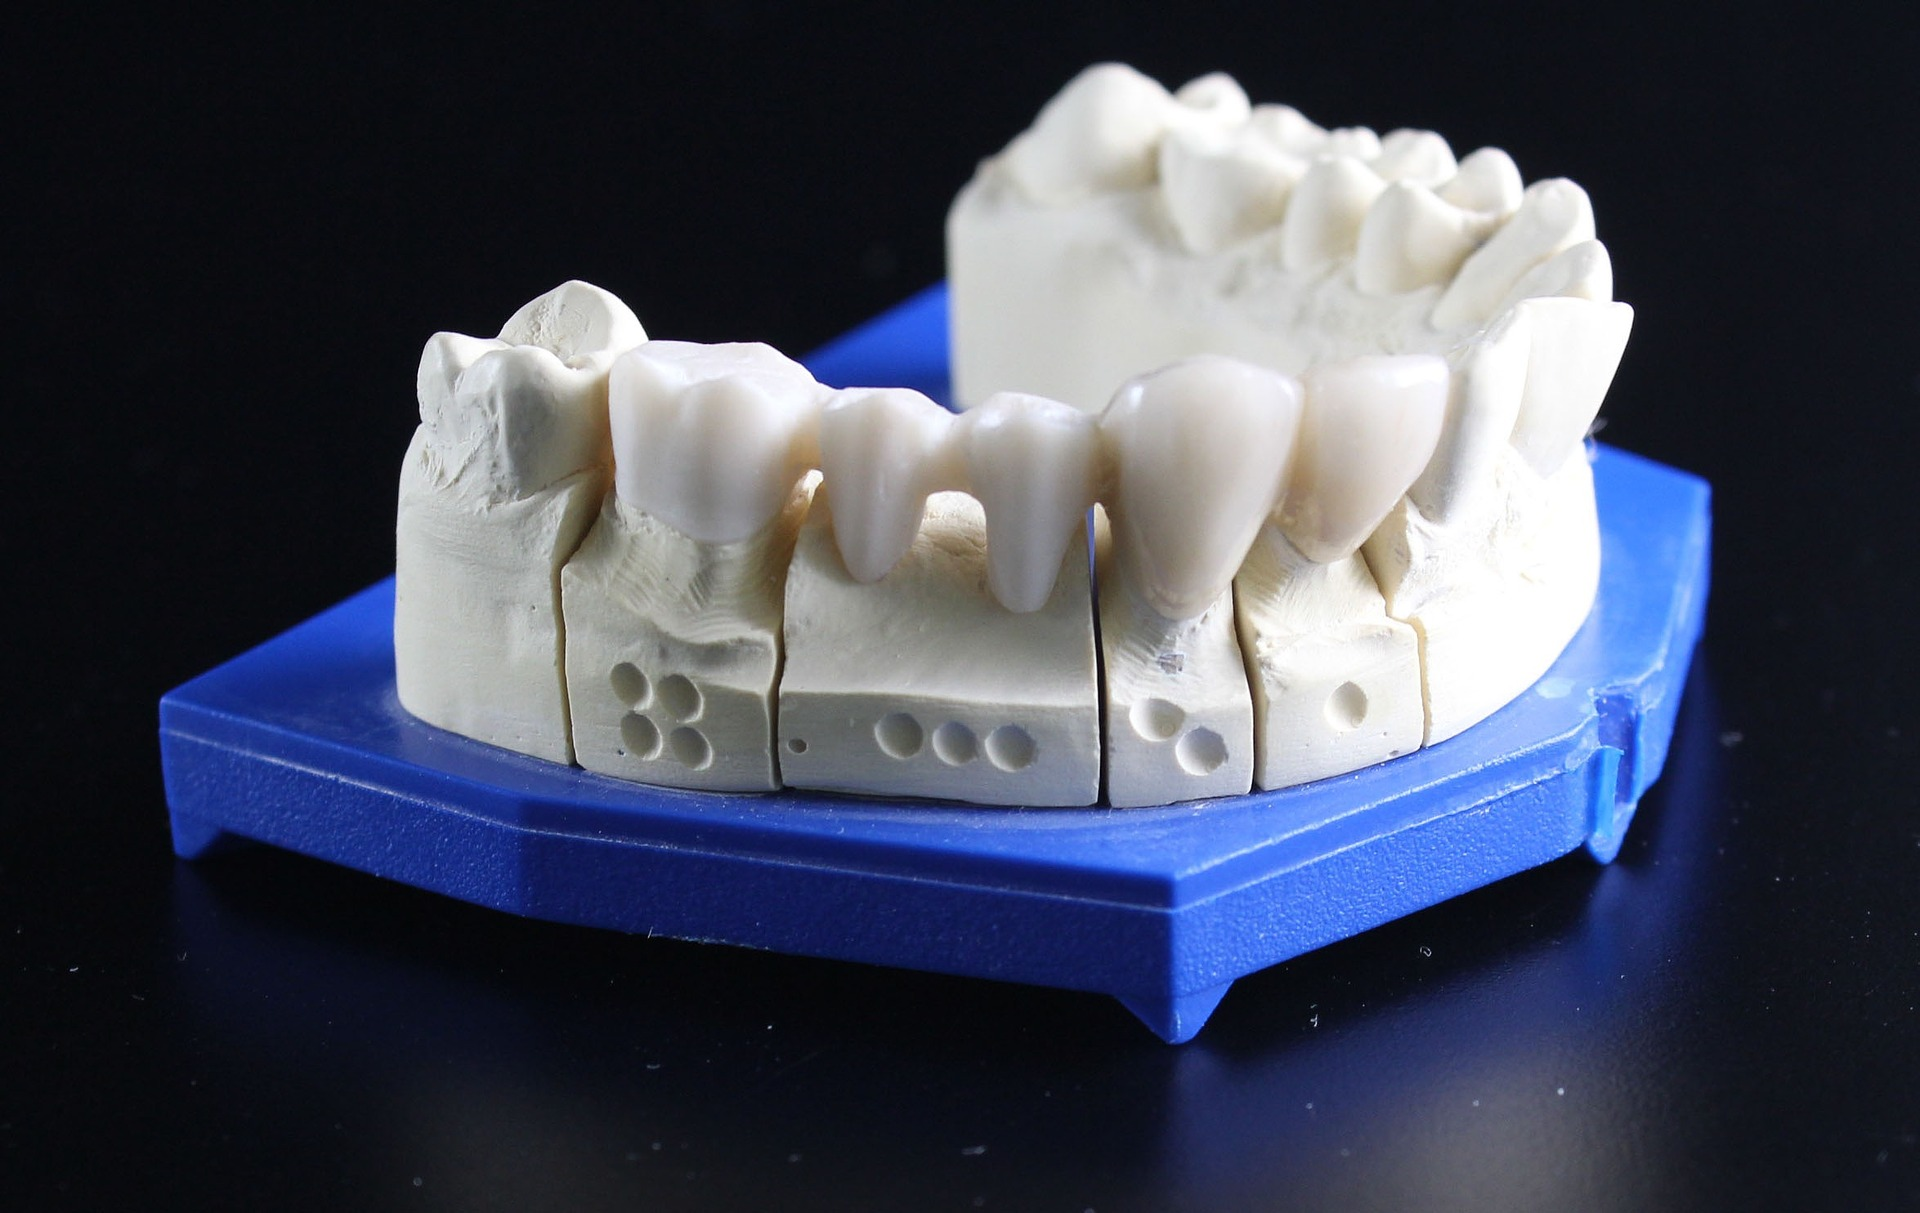 tooth-replacement-759928_1920.jpg